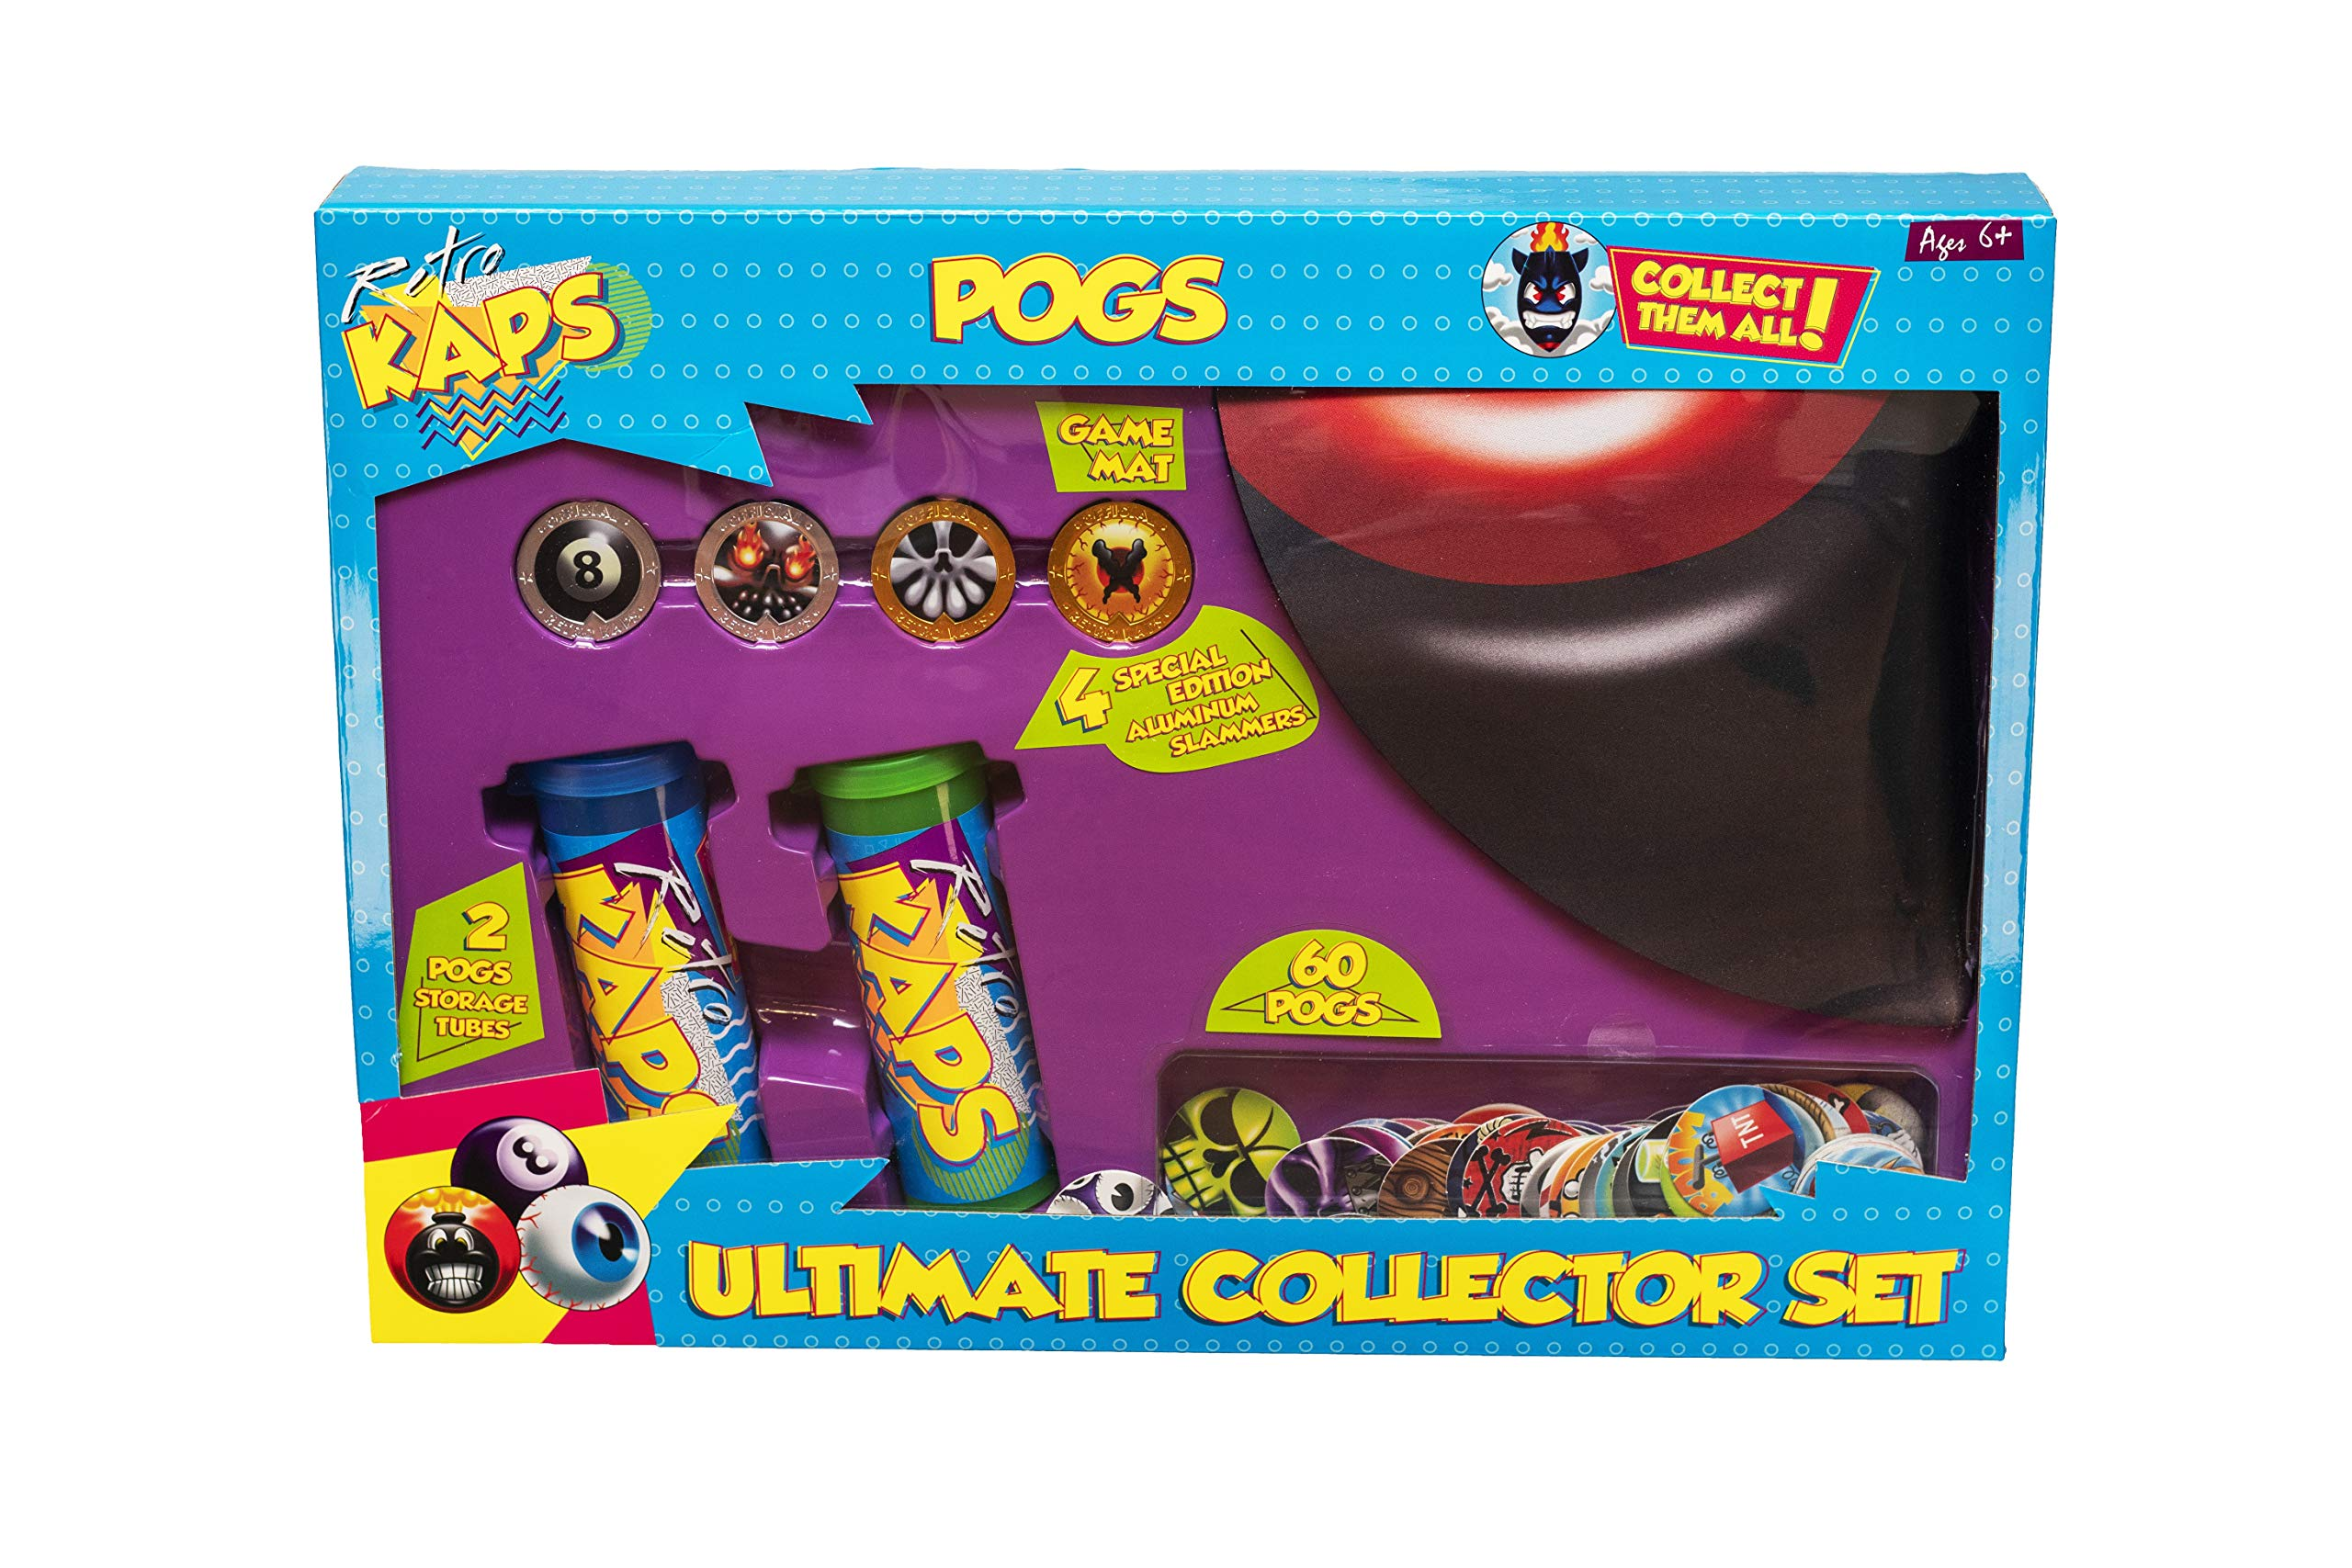 Pog Retro Kaps Ultimate Collector Set Game Includes: 60 Pogs , 4 Exclusive Slammers , 2 Storage Tubes & 1 Deluxe Game Mat by Pog Retro Kaps